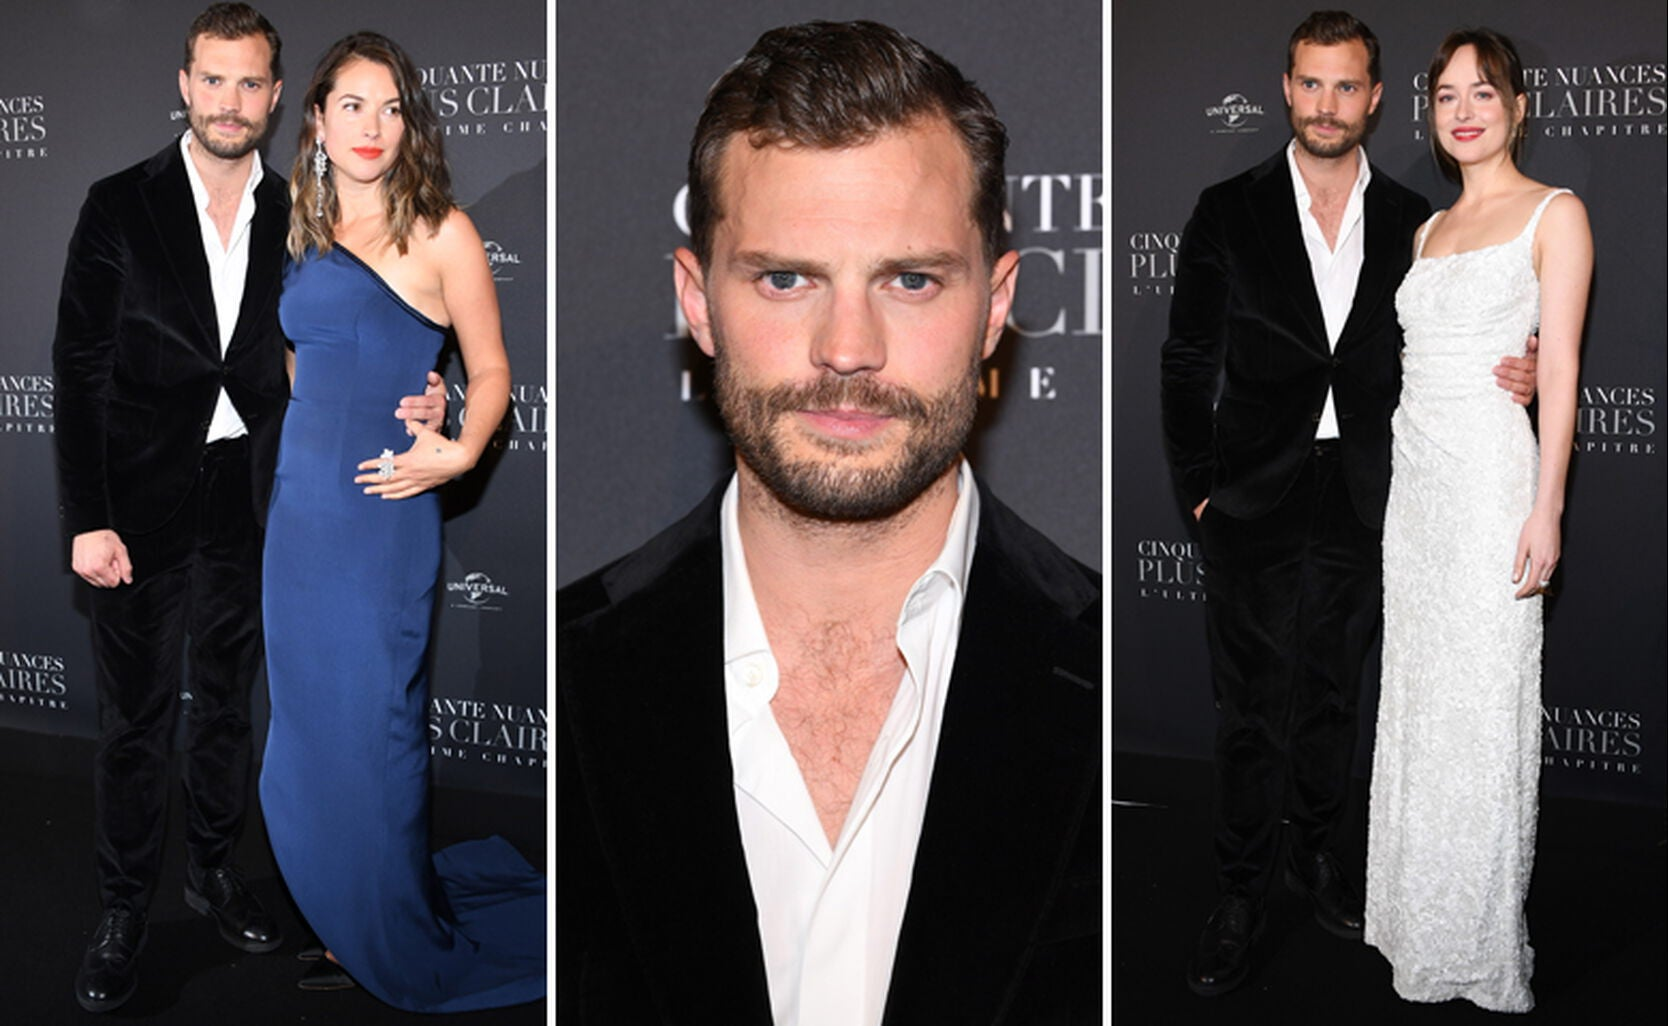 Jamie Dornan with his wife Amelia Warner, Jamie and then Jamie with Dakota Johnson